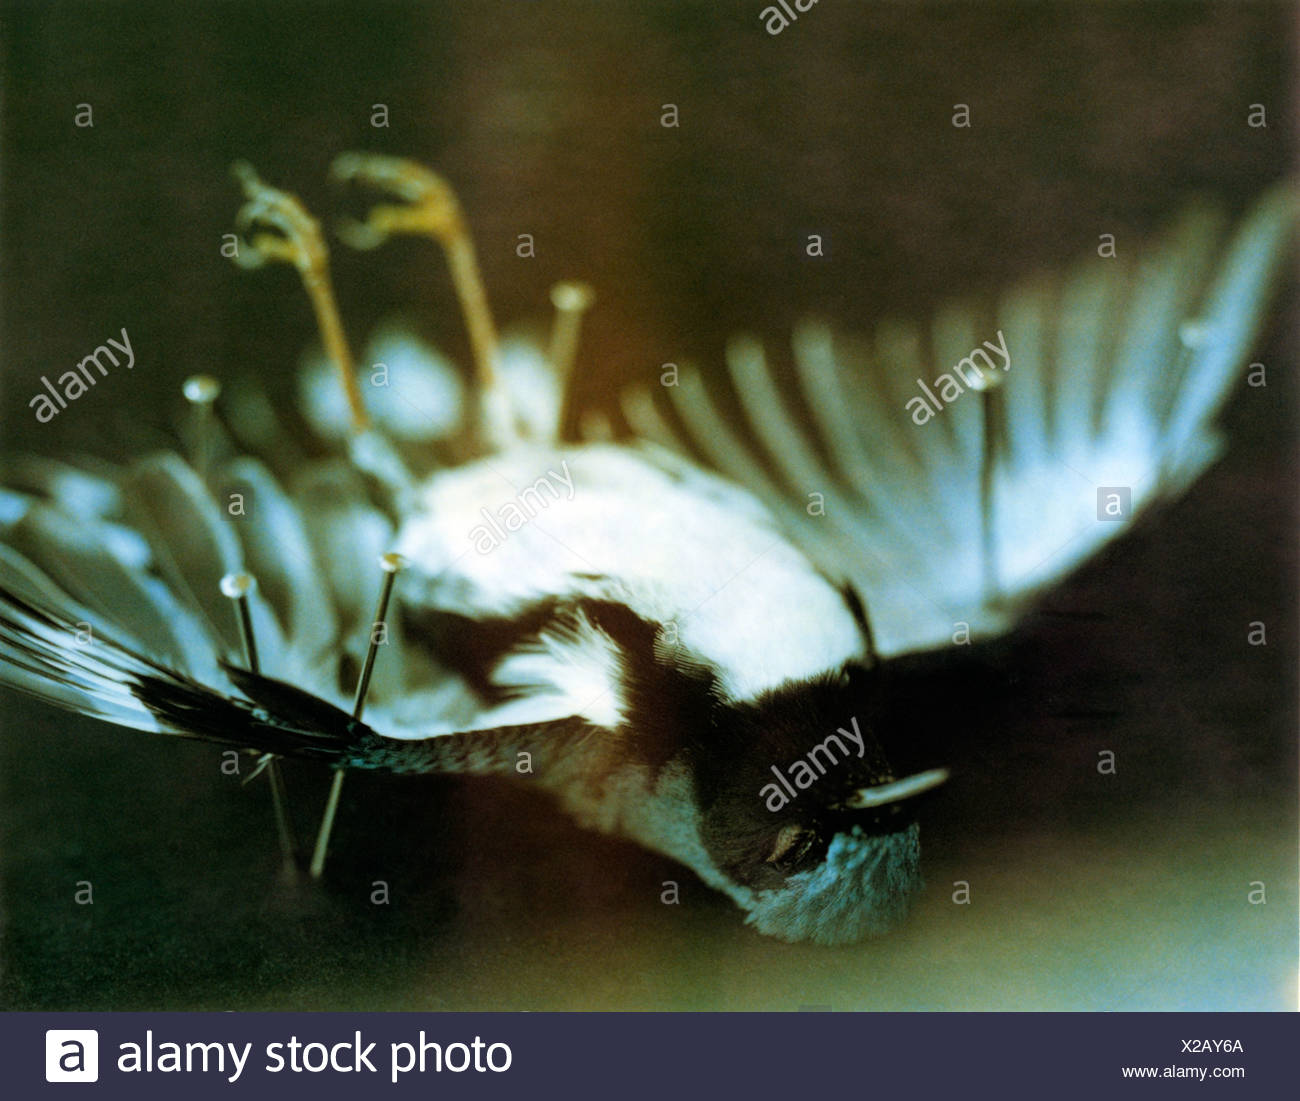 Dead Eastern bluebird (Sialia sialis) pinned to a table - Stock Image